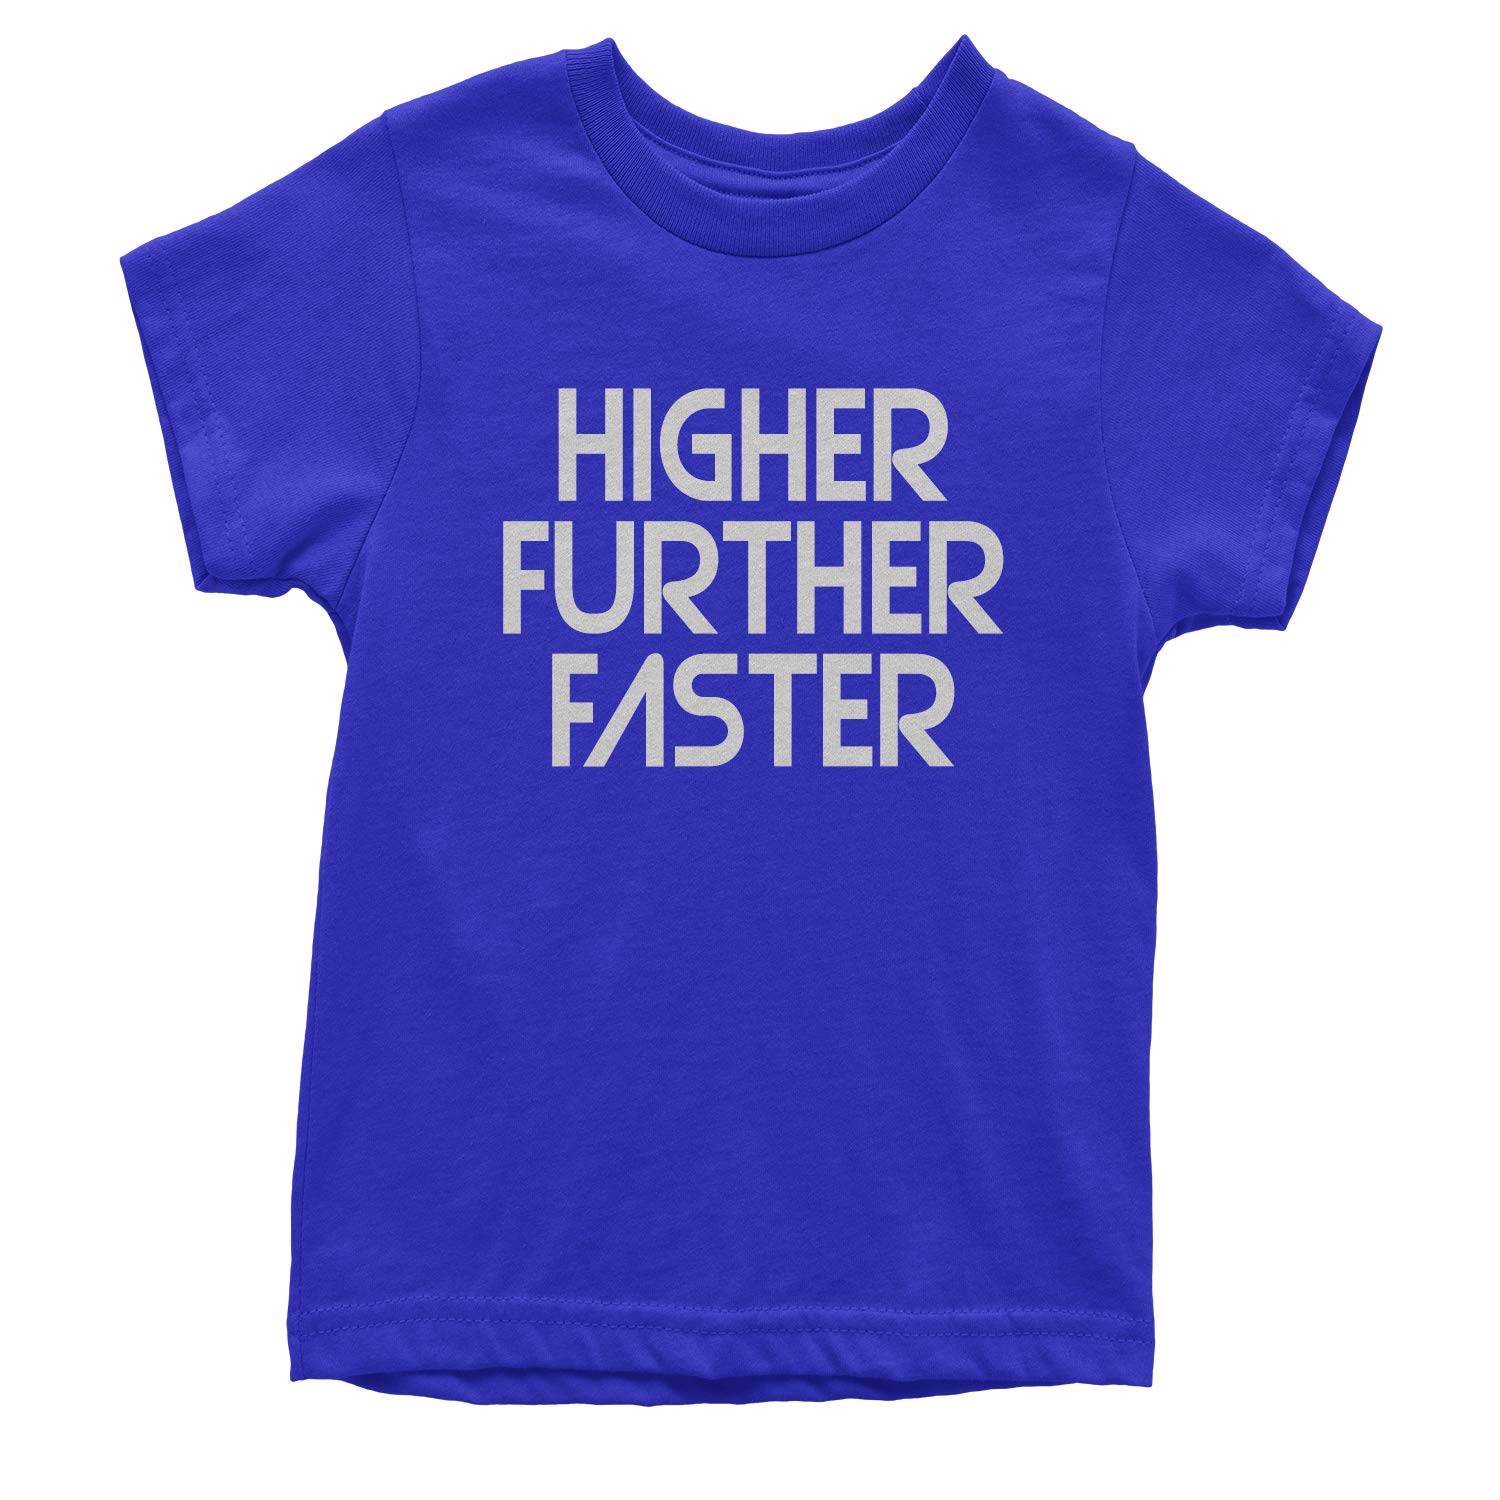 Further Expression Tees Higher Faster Youth T-Shirt